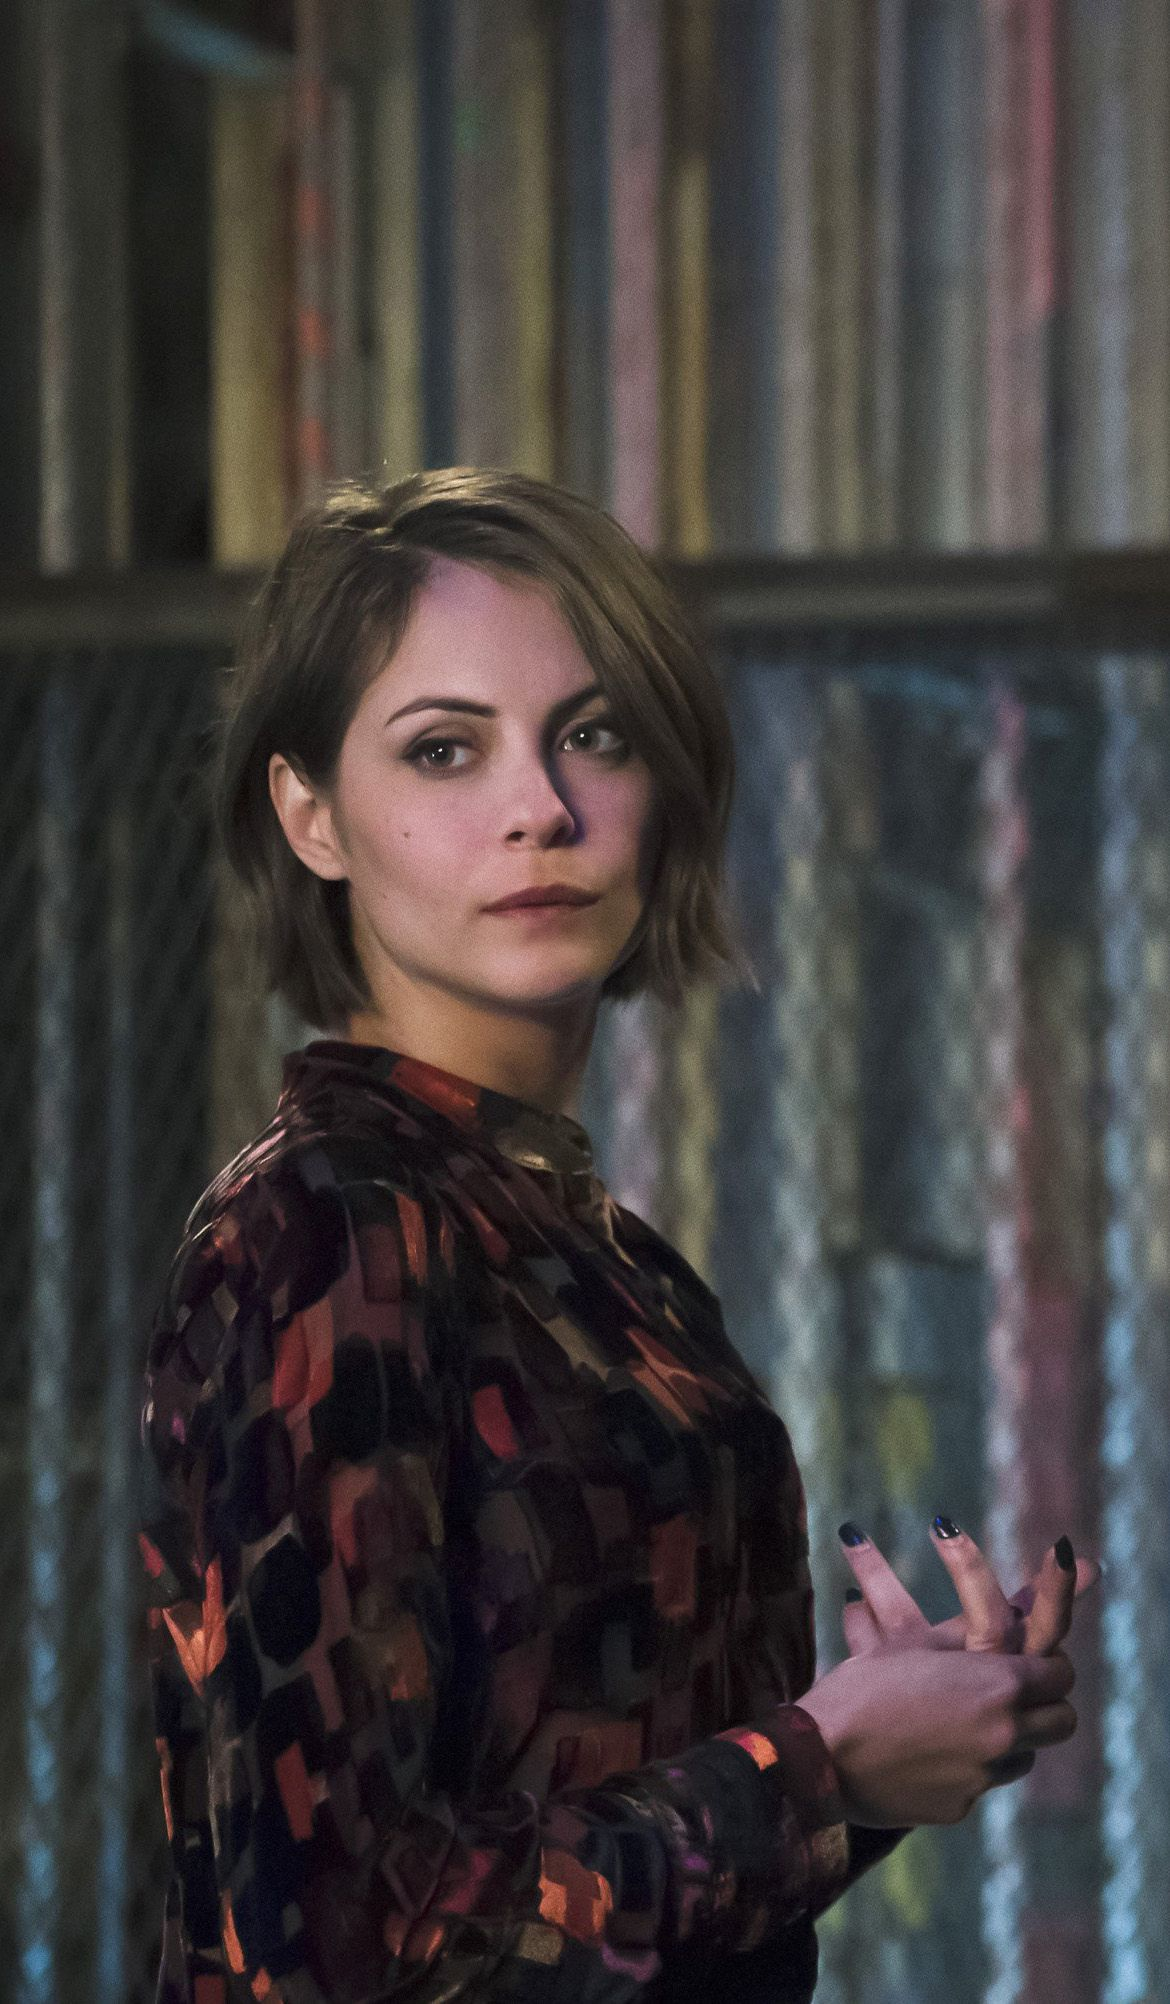 arrow 4x14 - thea queen hd